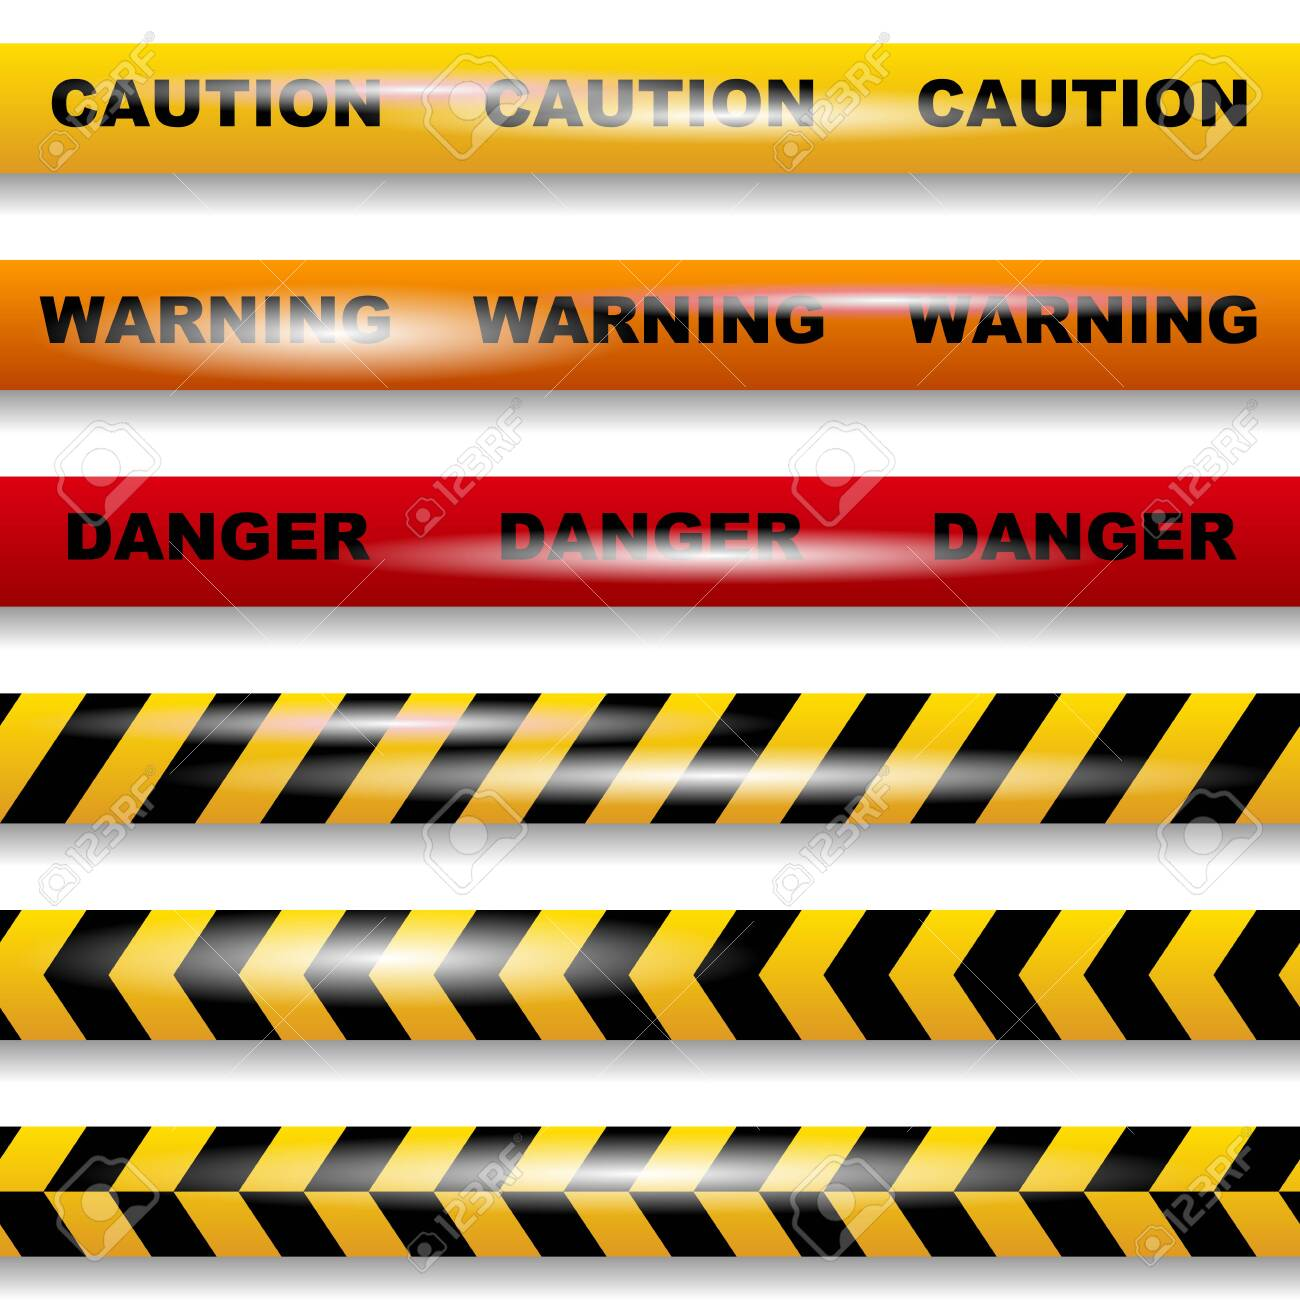 Set of seamless caution tapes on white background vector image - 143761524